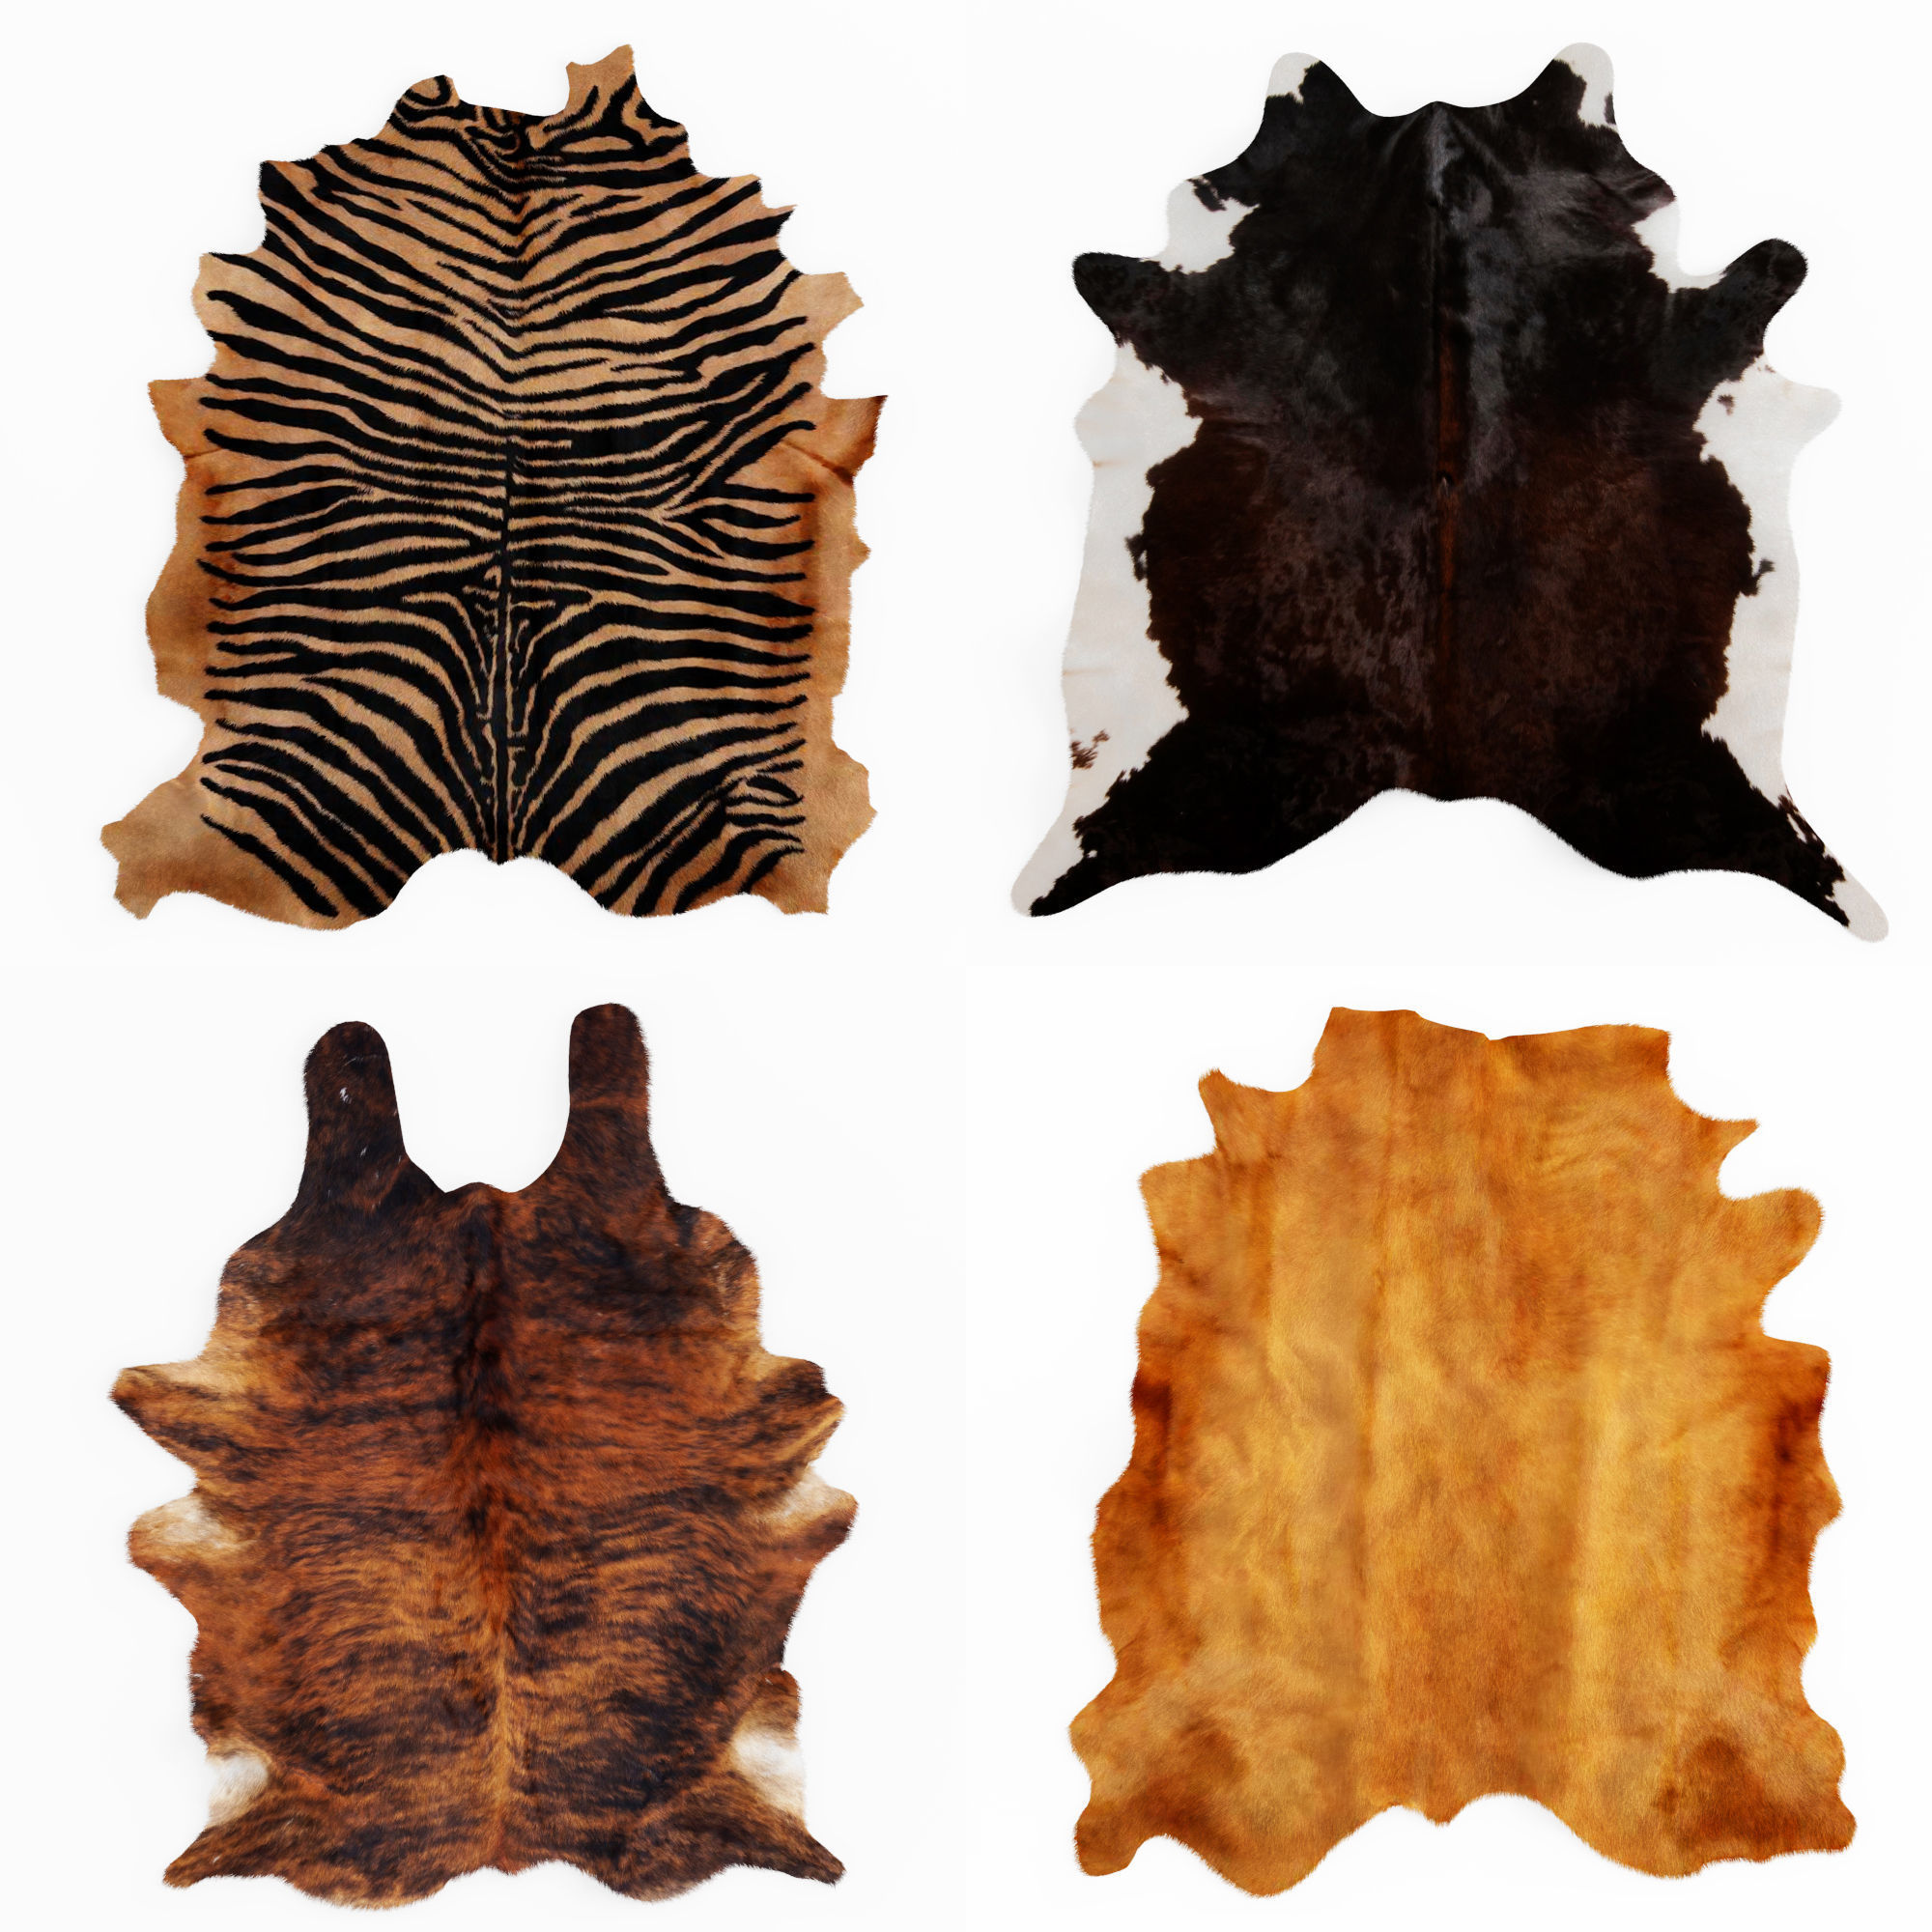 Four rugs from animal skins 03